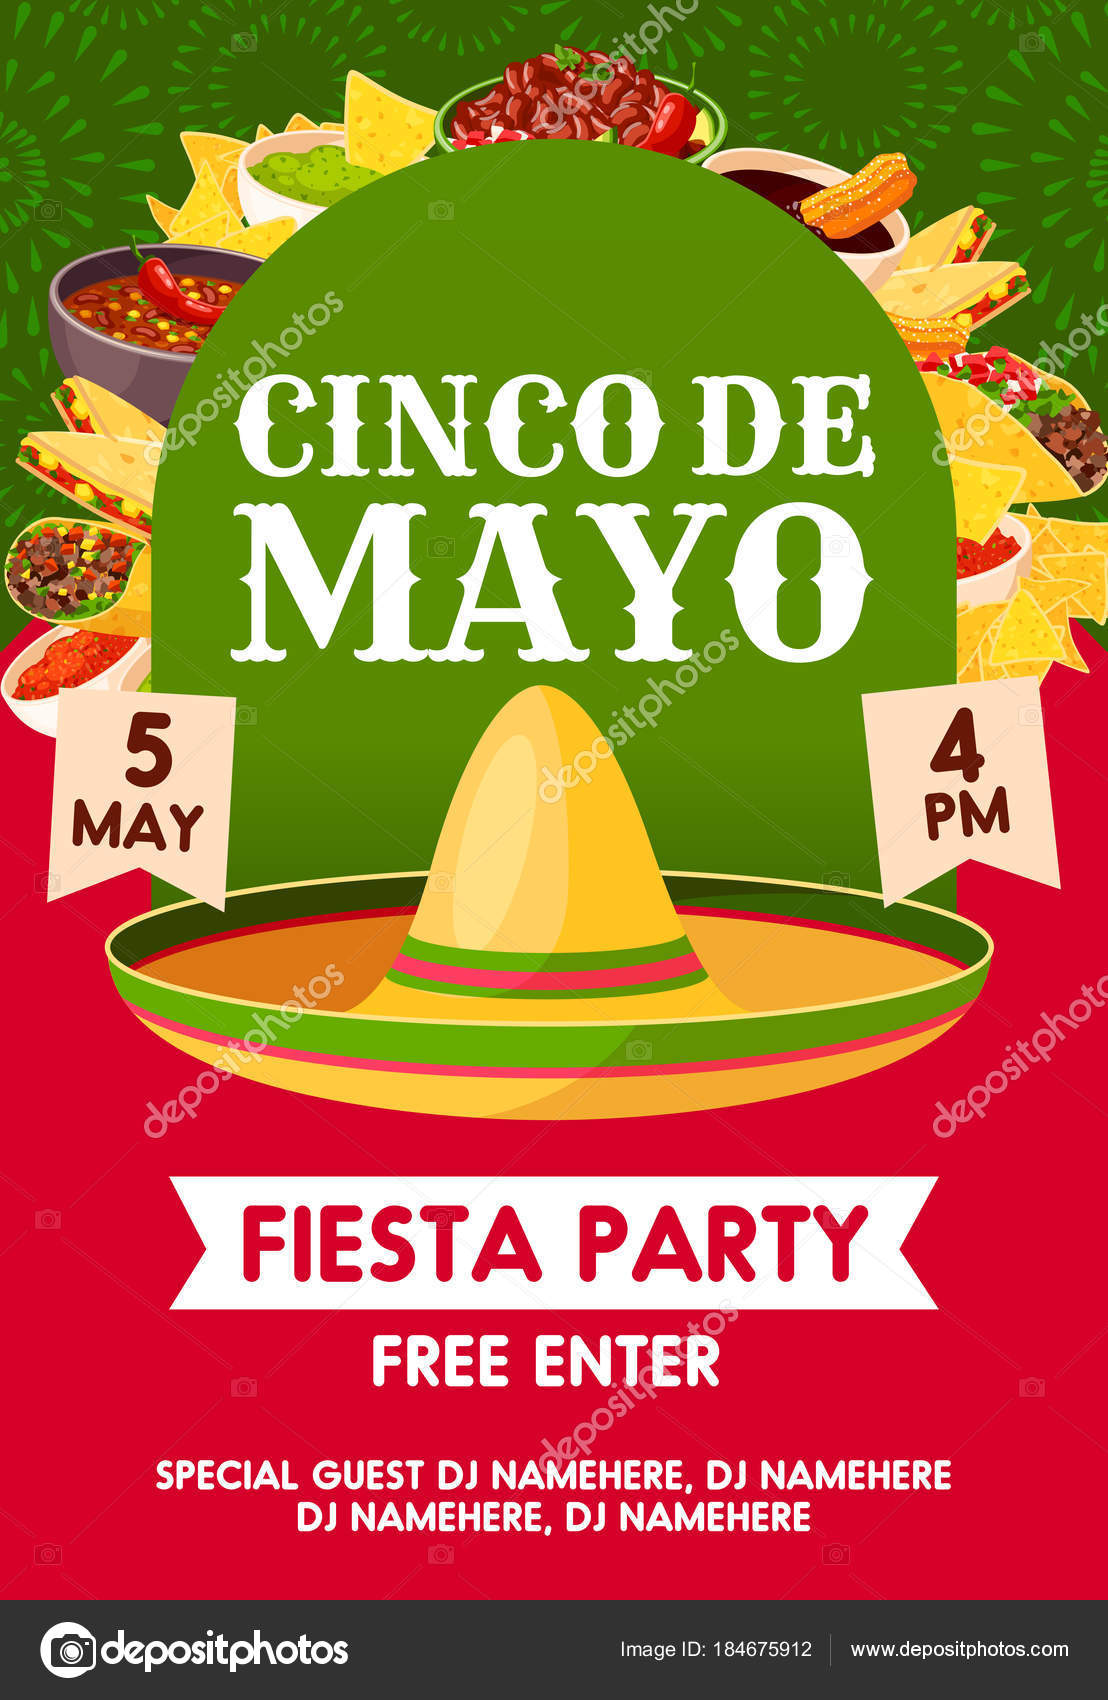 Cinco de mayo mexican party banner invitation stock vector cinco de mayo mexican holiday sombrero with festive food invitation banner for fiesta party template mexican hat with taco burrito and nacho stopboris Image collections